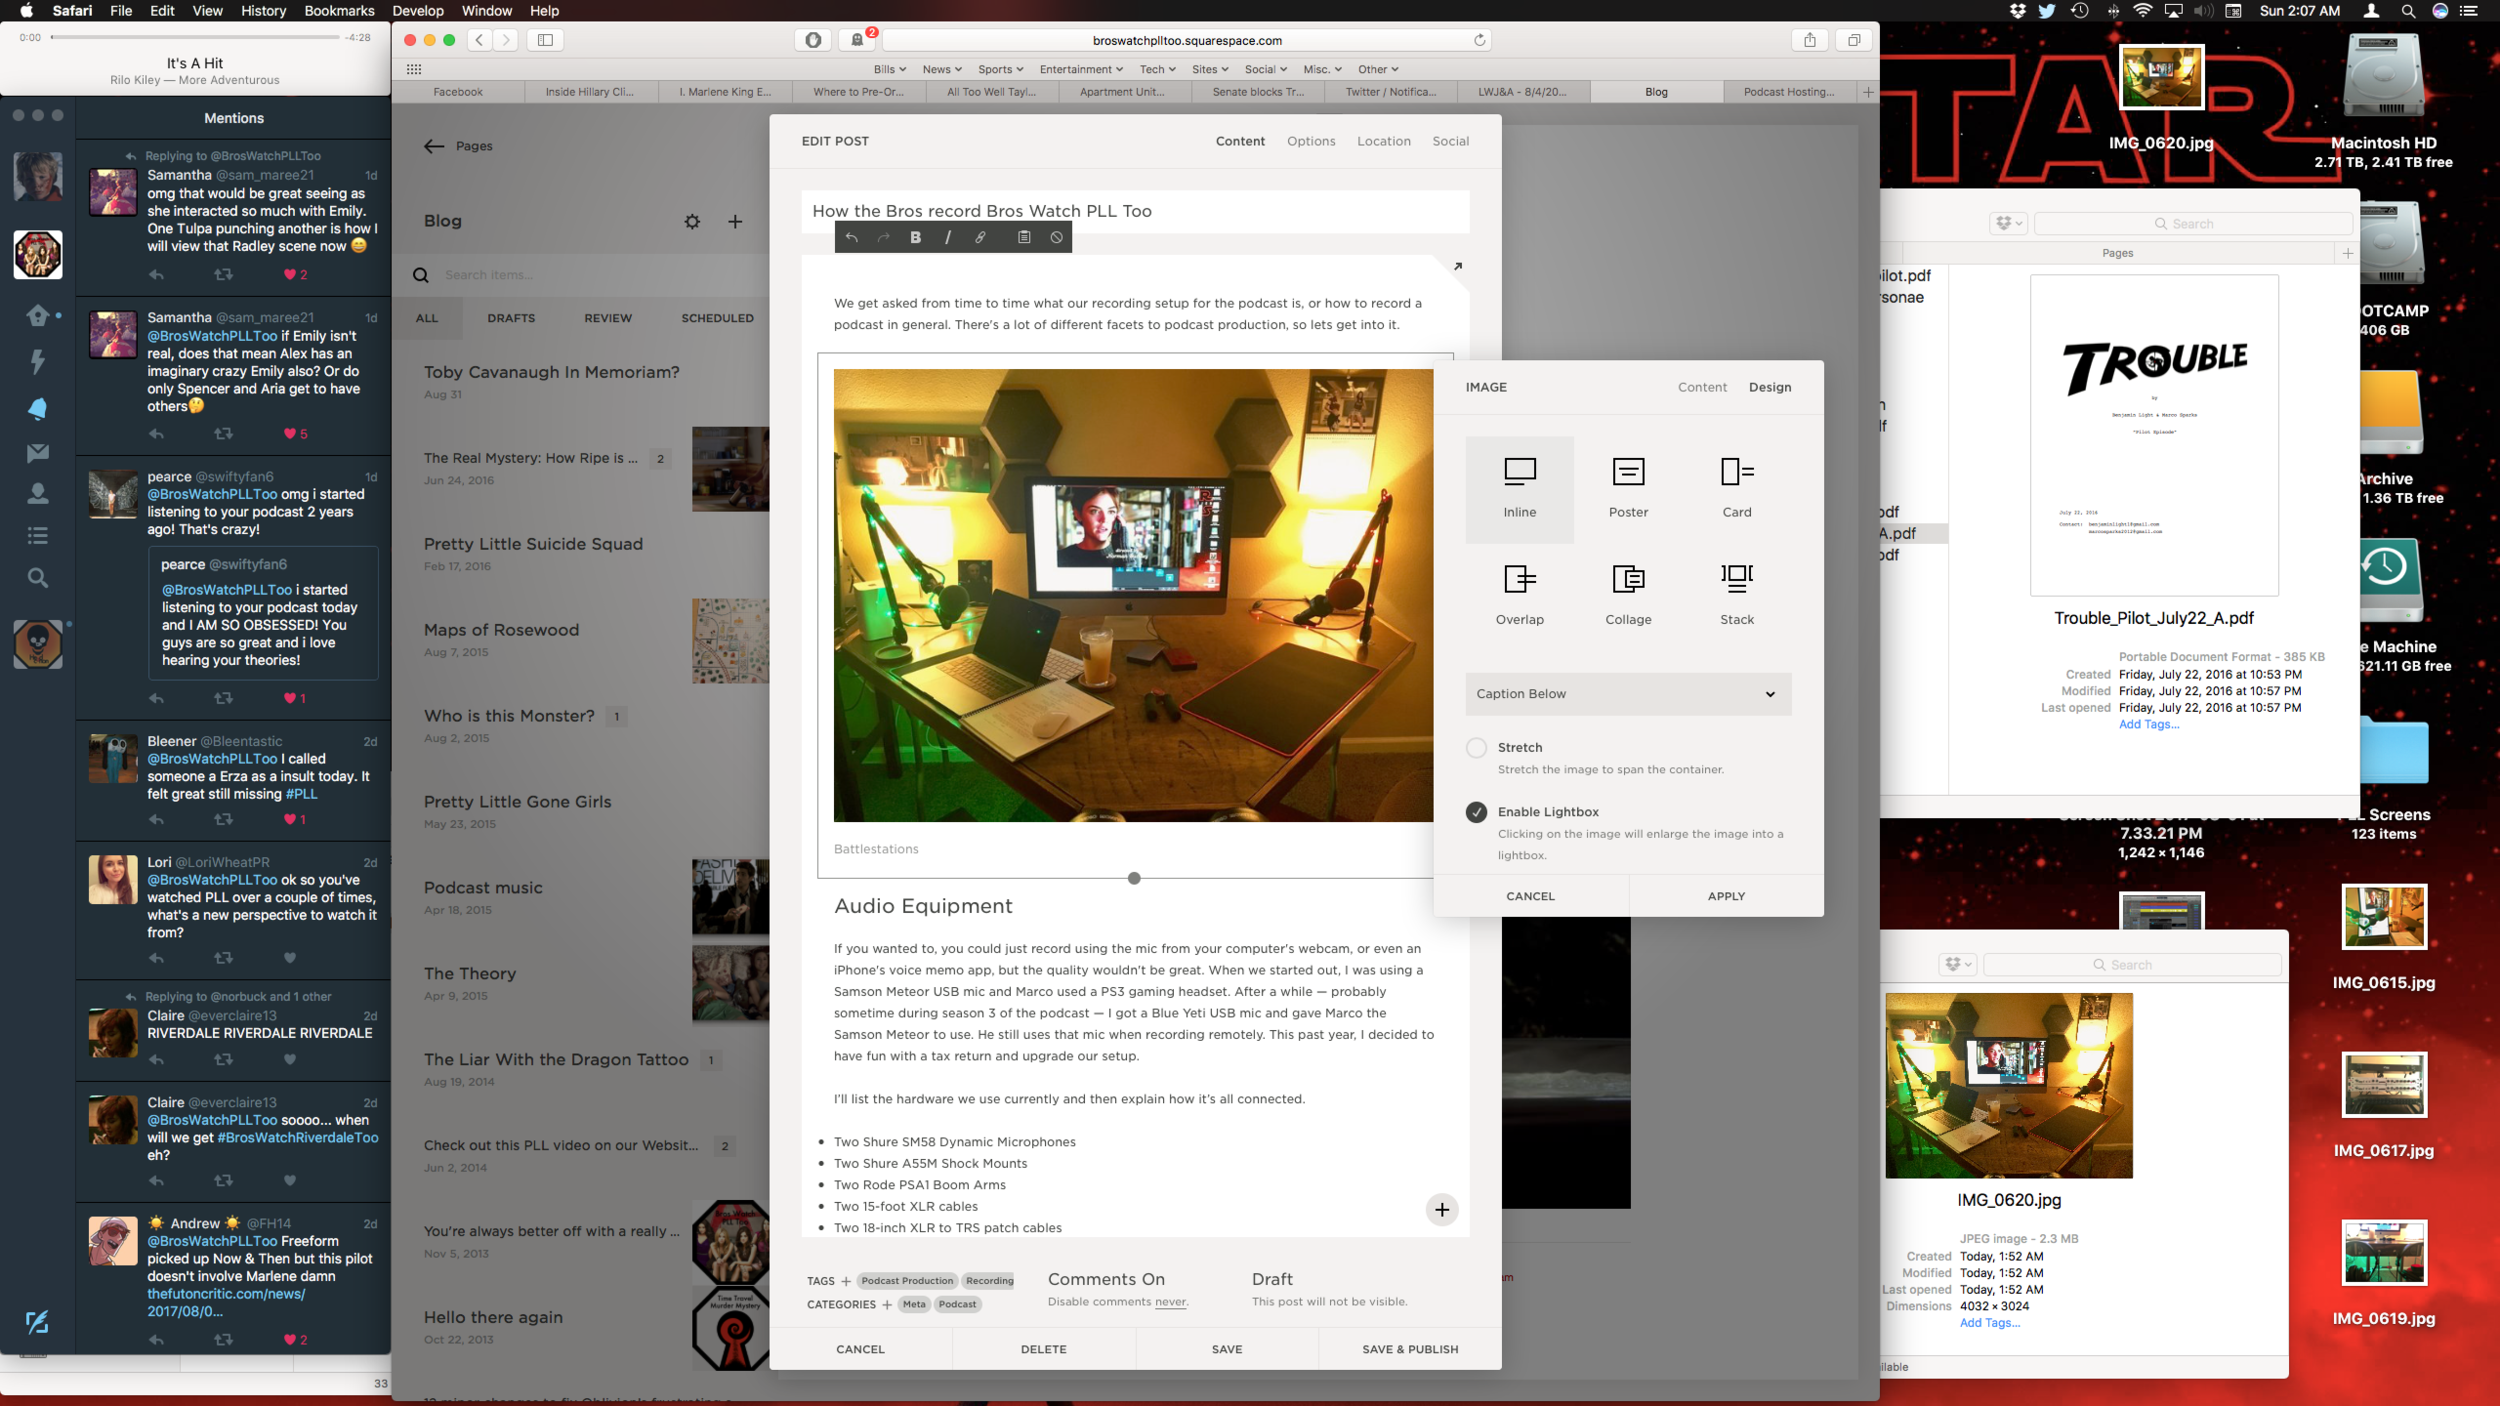 The Squarespace interface.